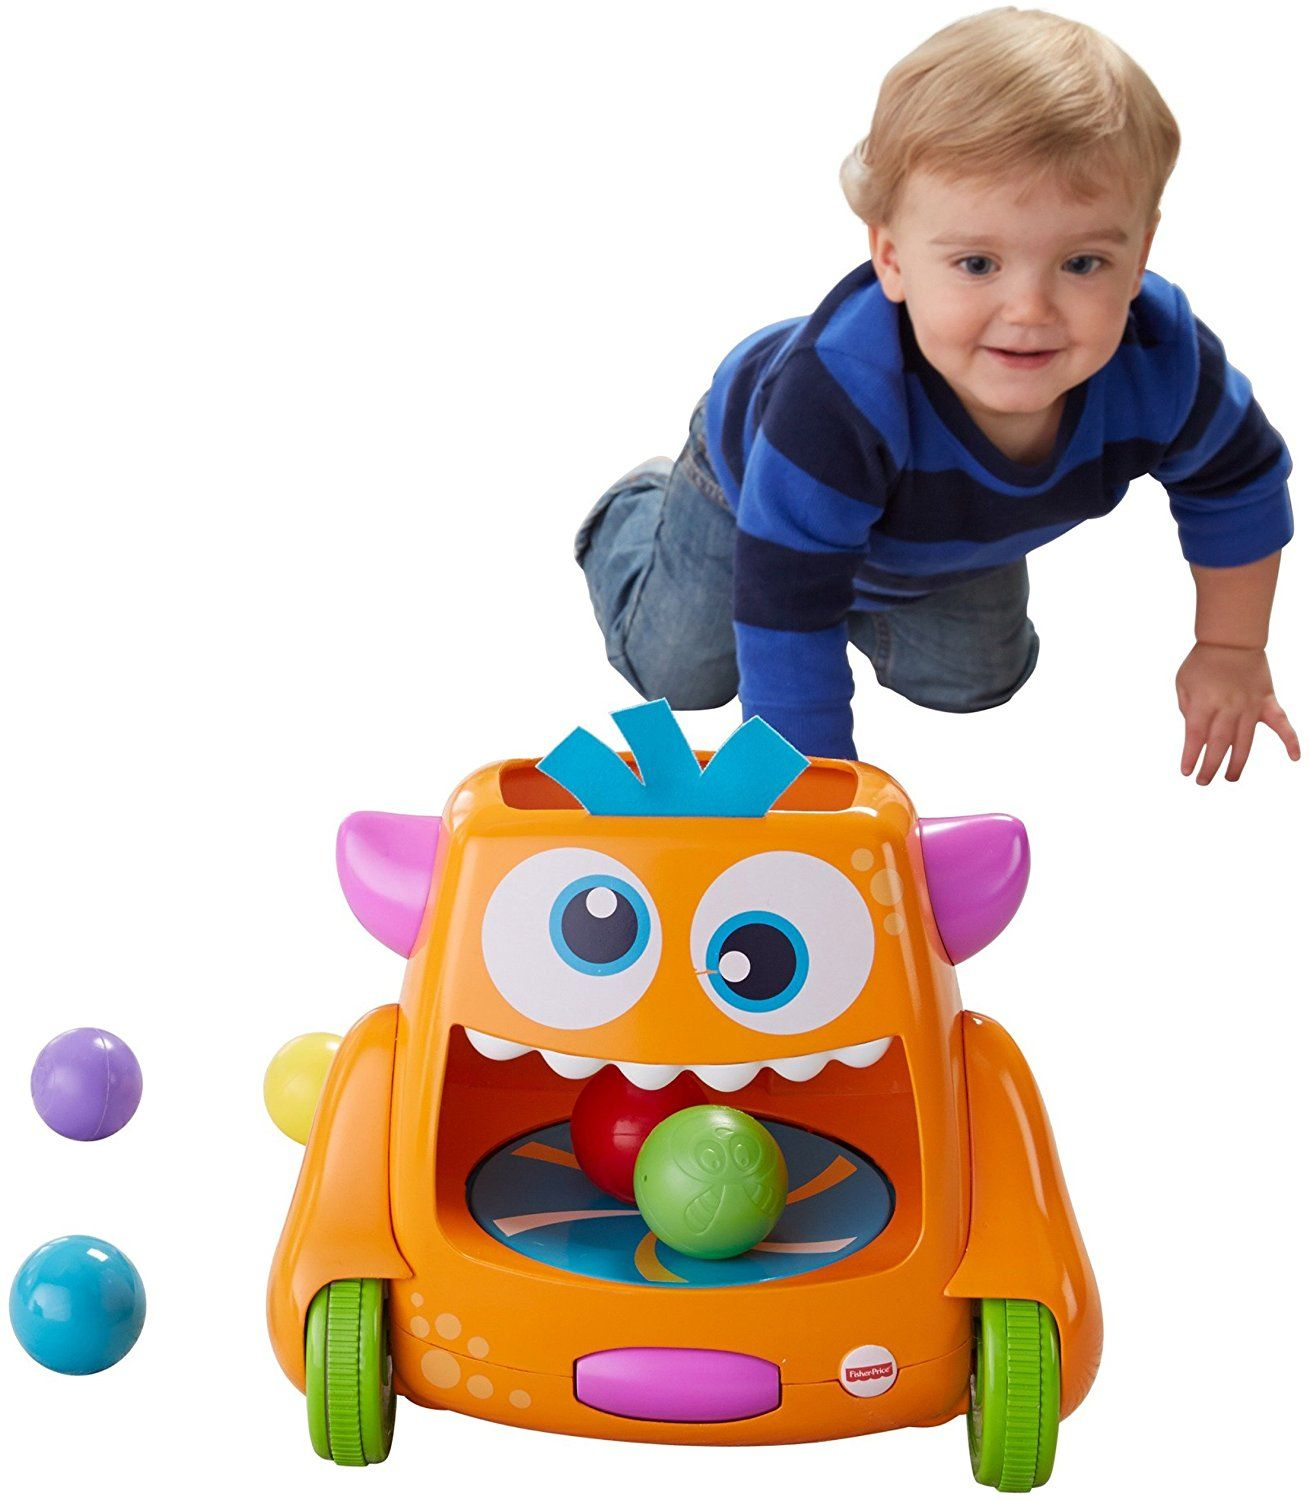 fisher price zoom n crawl monster at hisandherwishlistcom best hot new toys for christmas and birthday gift ideas for kids